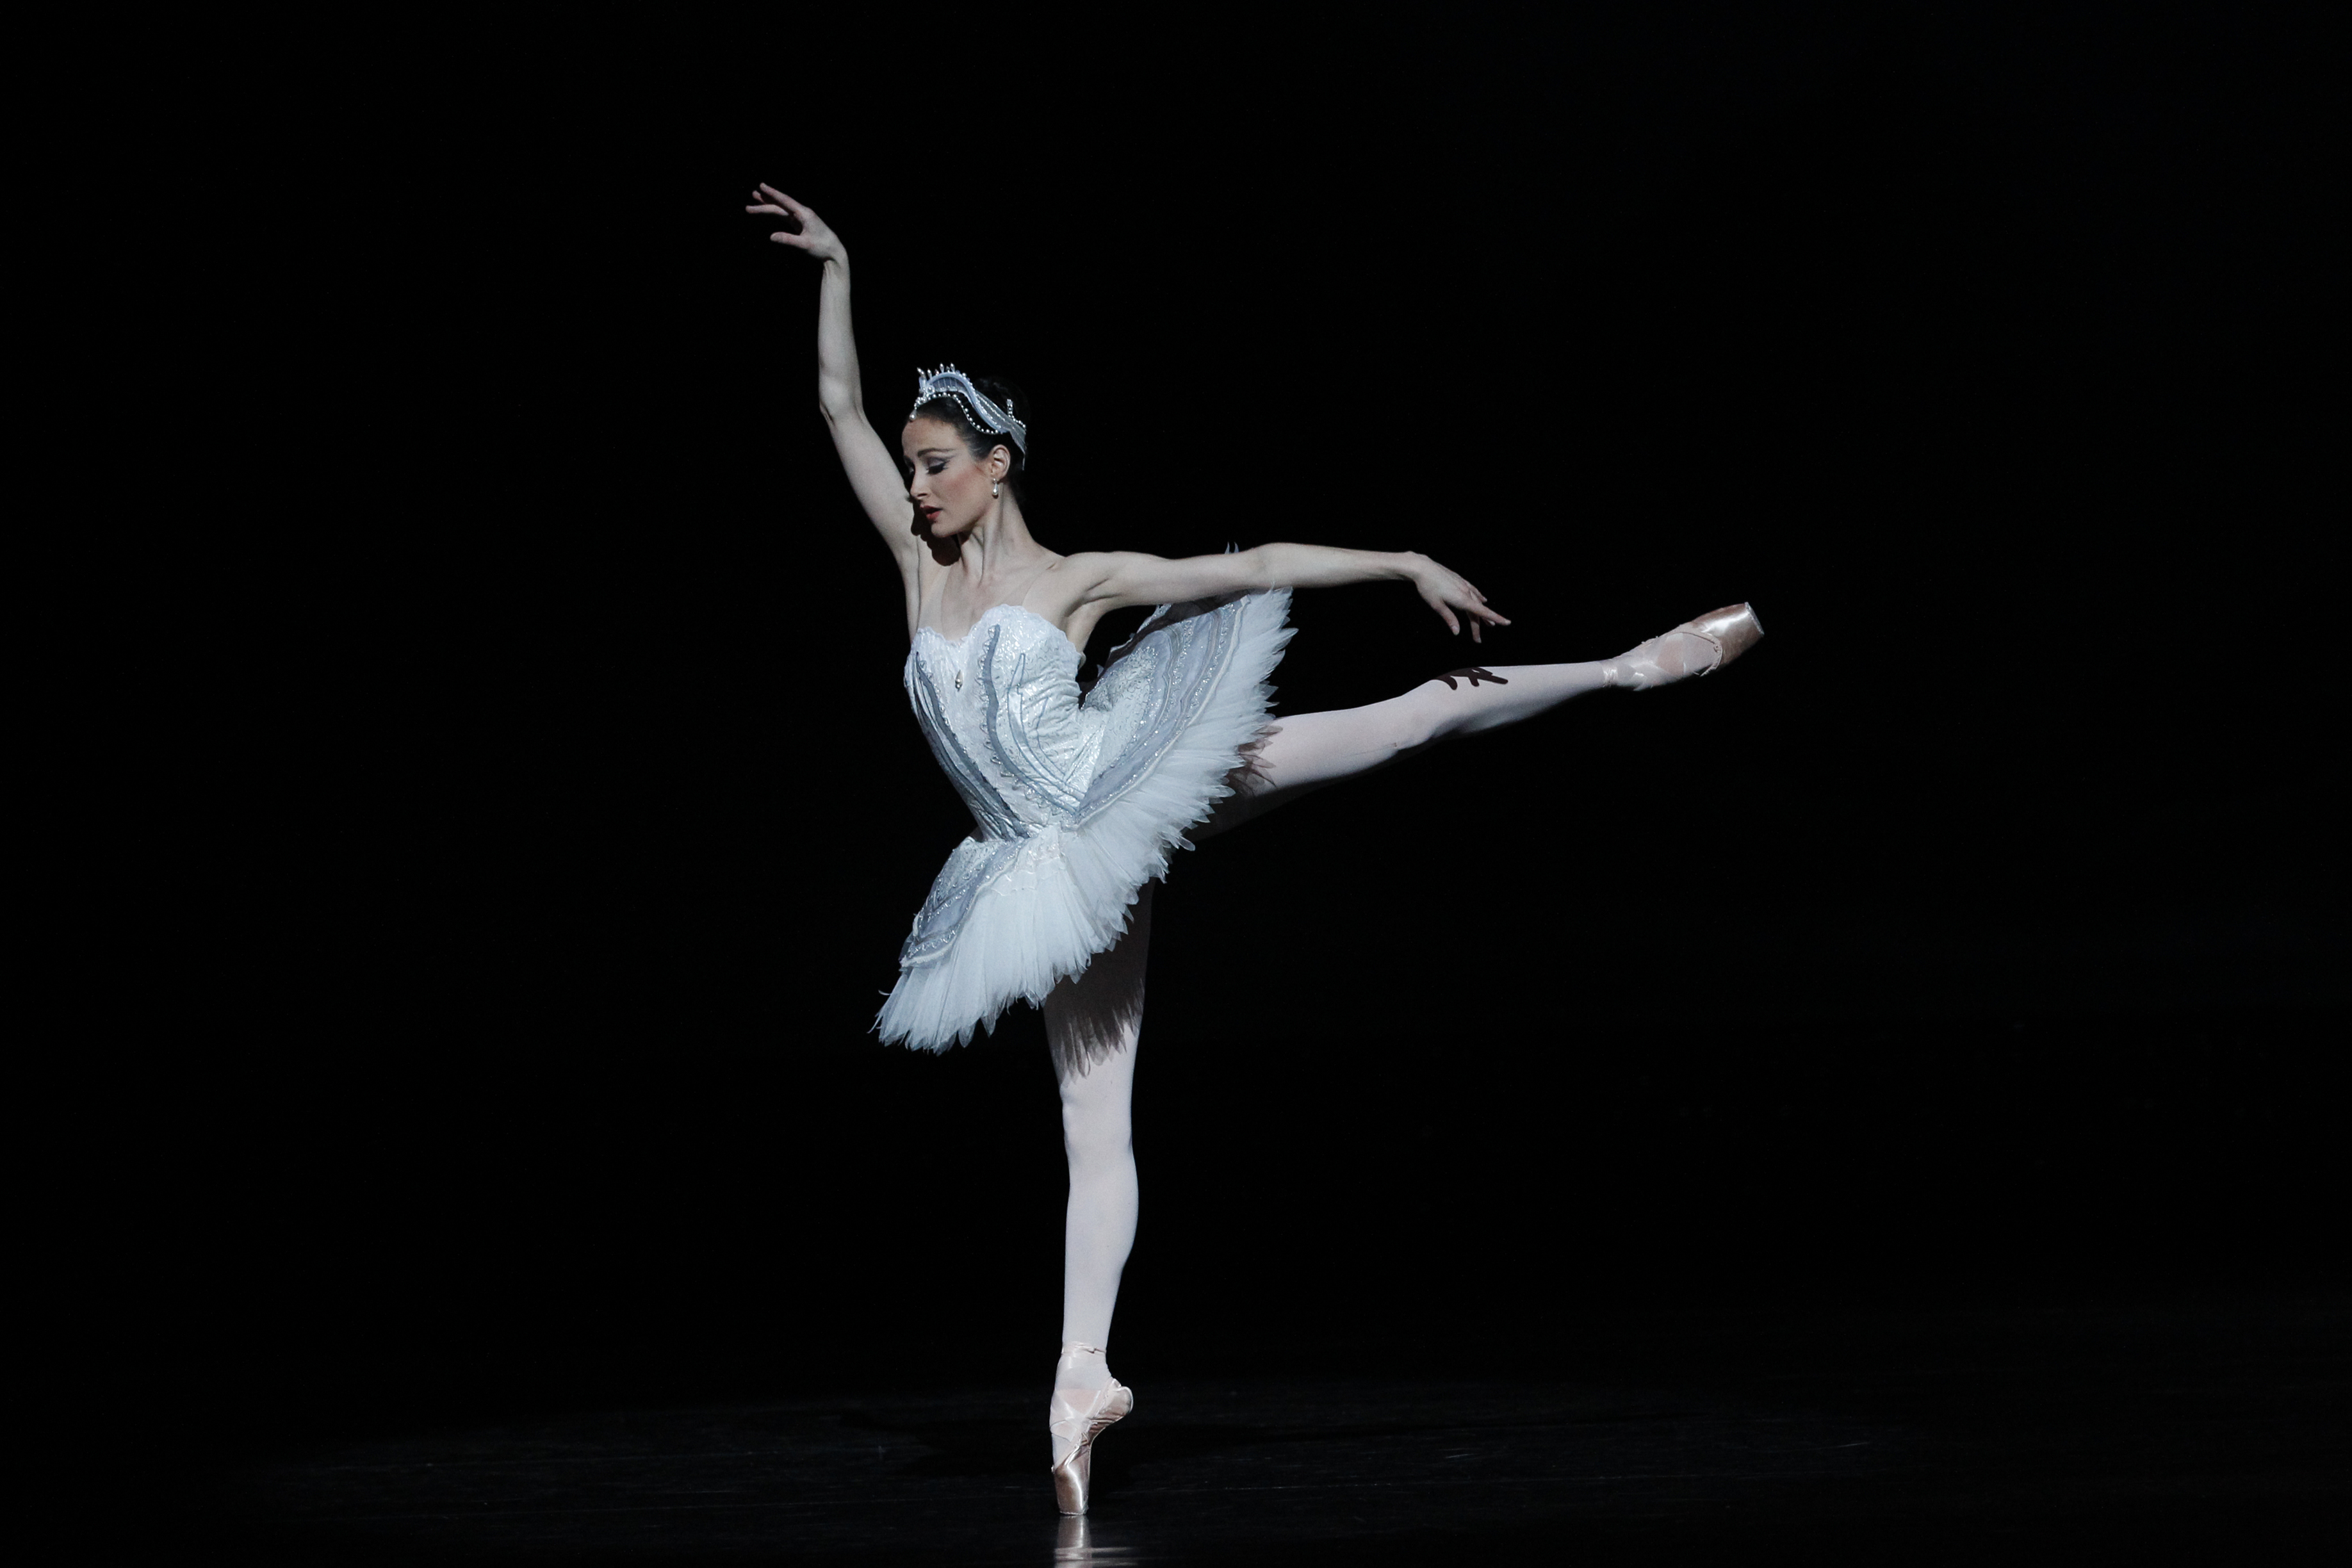 White Swan in a Ballet Dance 122.95 Kb